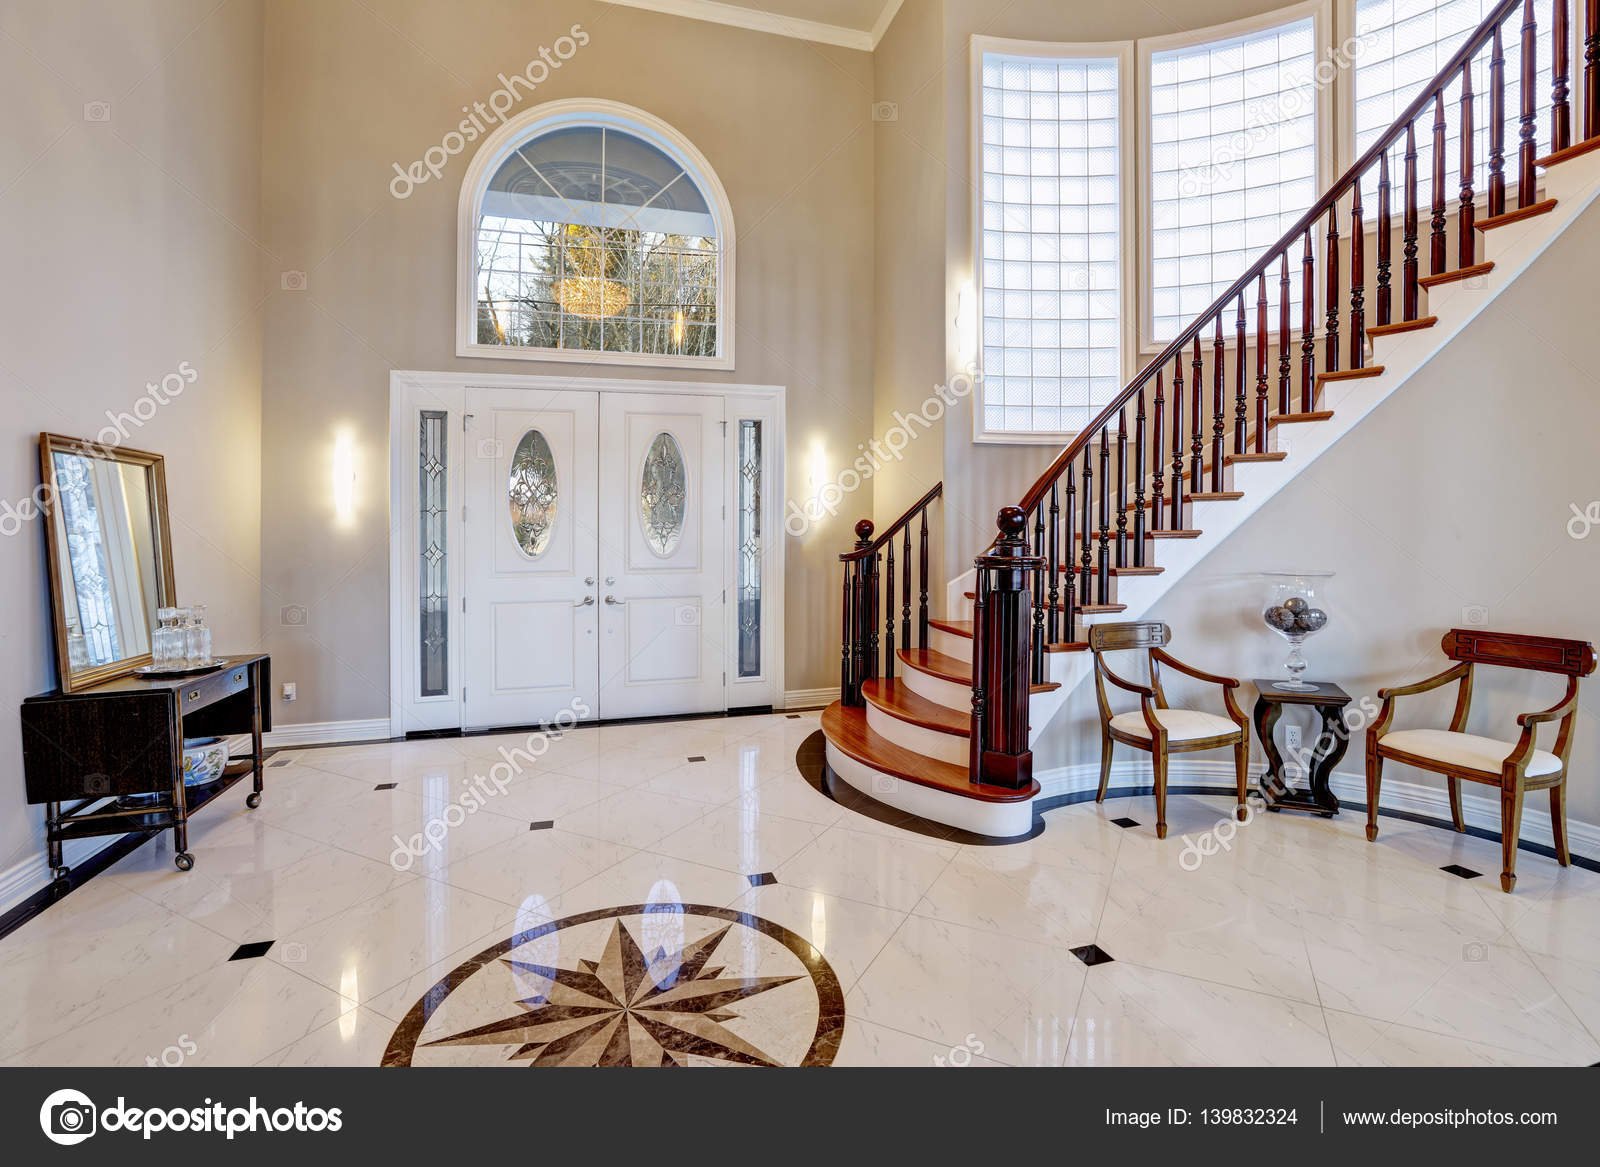 Stunning two story entry foyer with marble mosaic tiled floor stunning two story entry foyer with lots of space boasts marble mosaic tile floor front door framed with arch window and sidelights grand staircase with dailygadgetfo Gallery